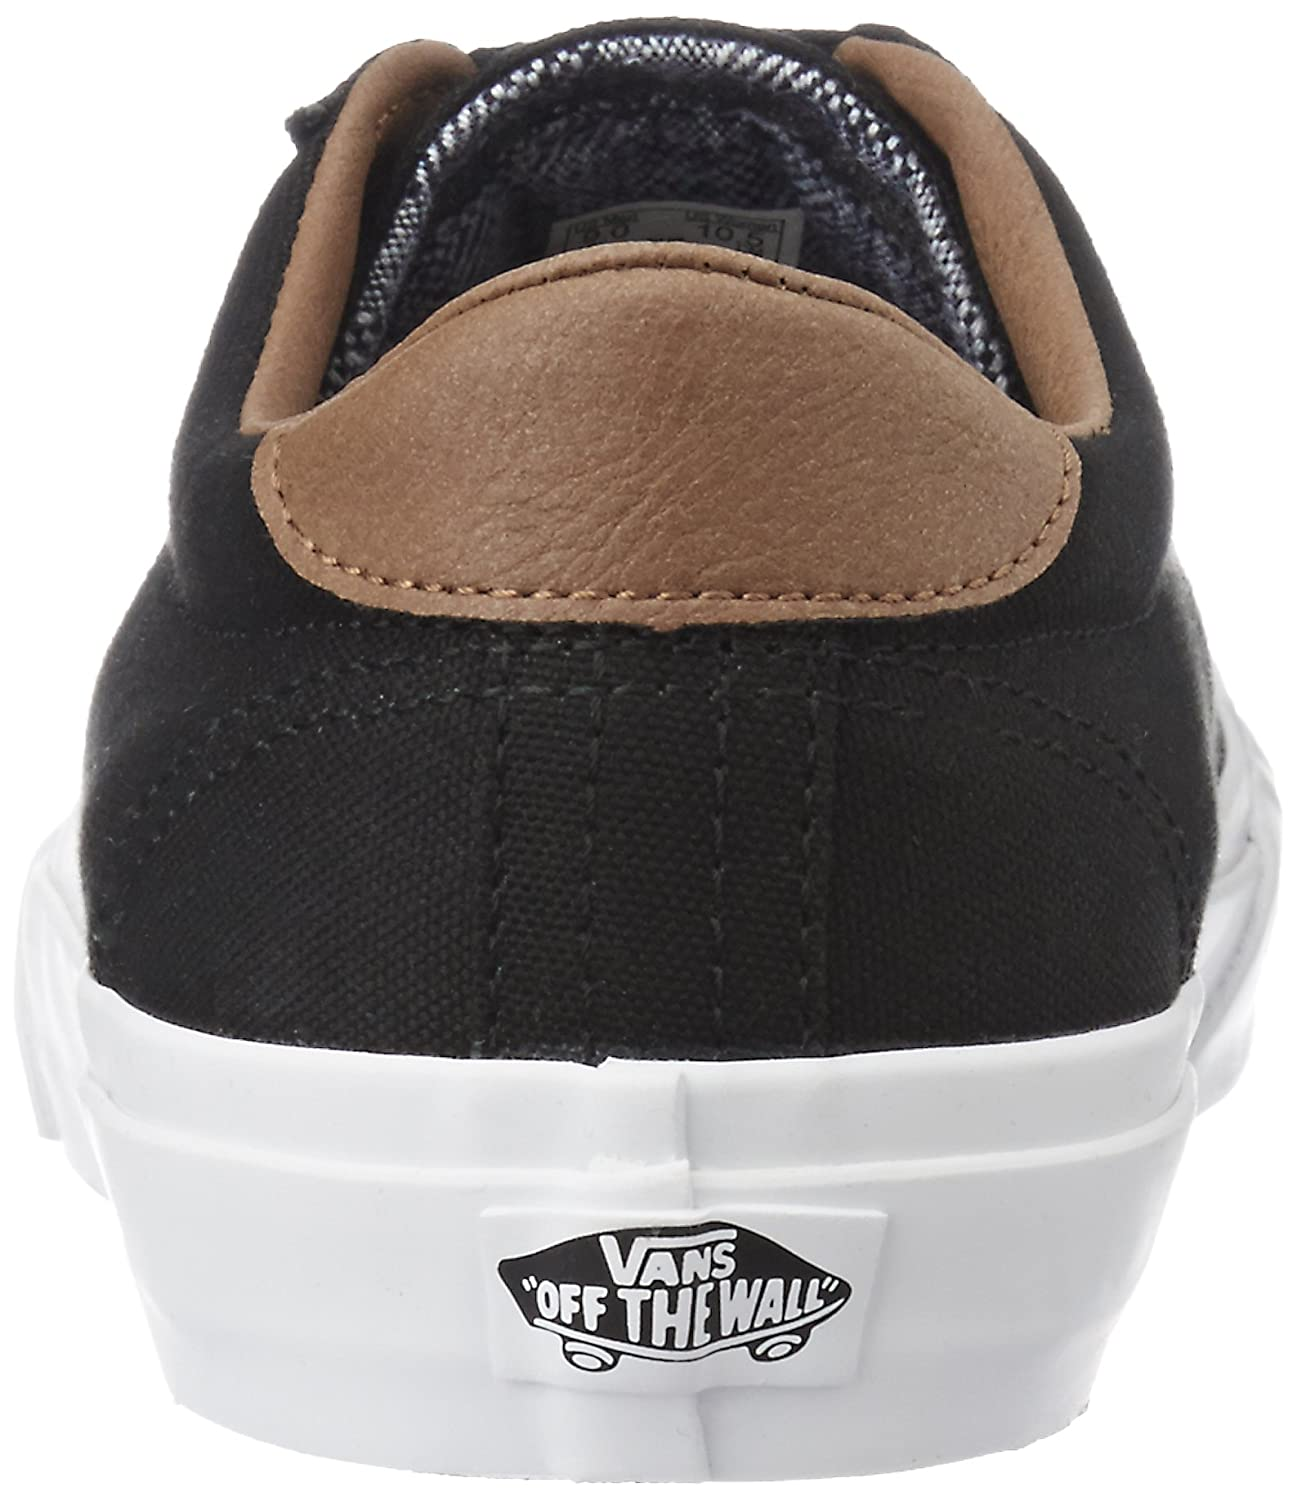 32e3f8b394 Vans Unisex Court Sneakers  Buy Online at Low Prices in India - Amazon.in